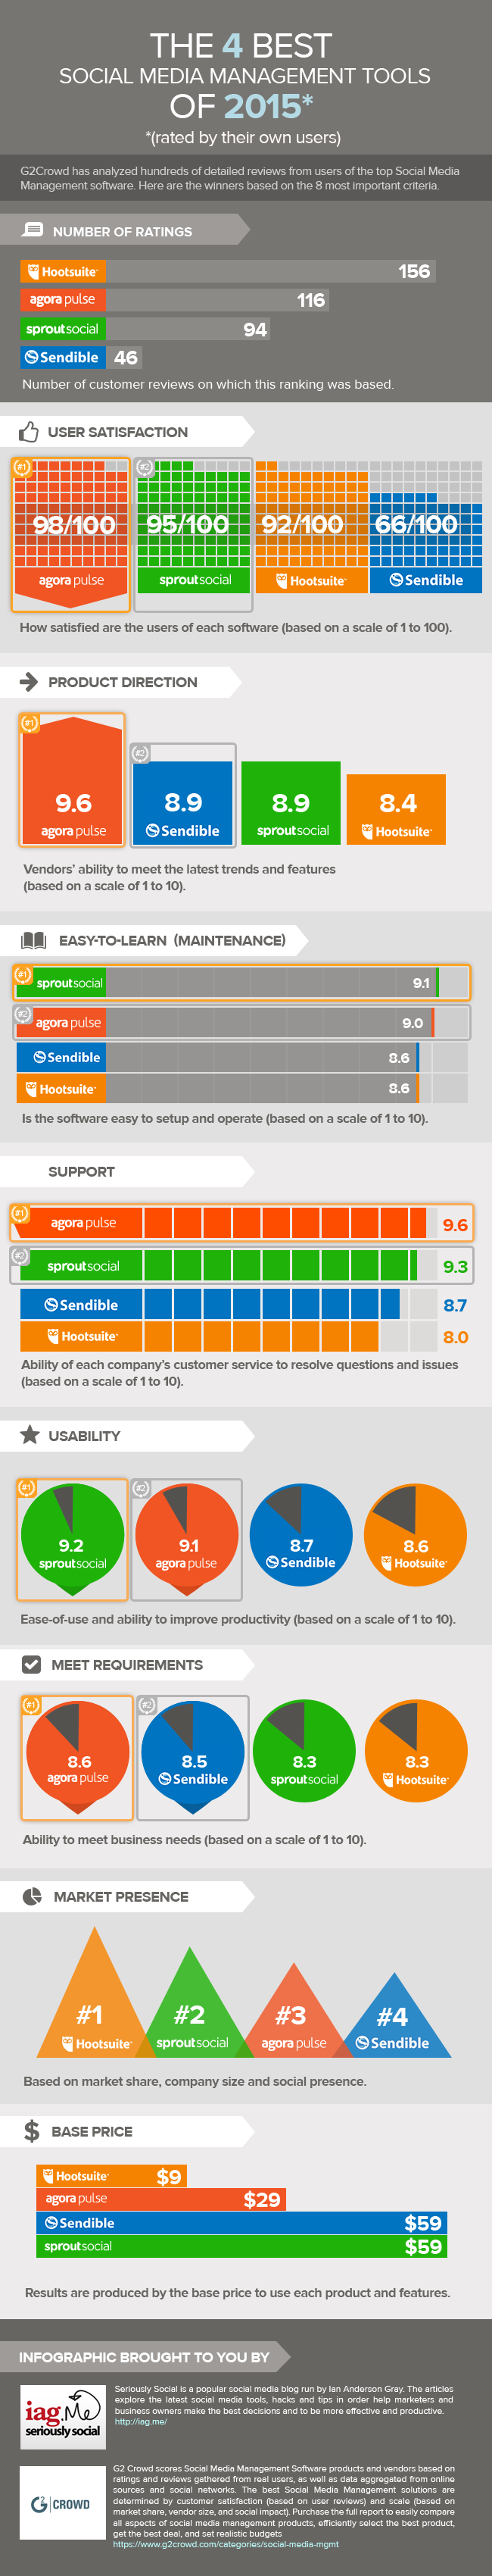 infographic-g2crowd-iag